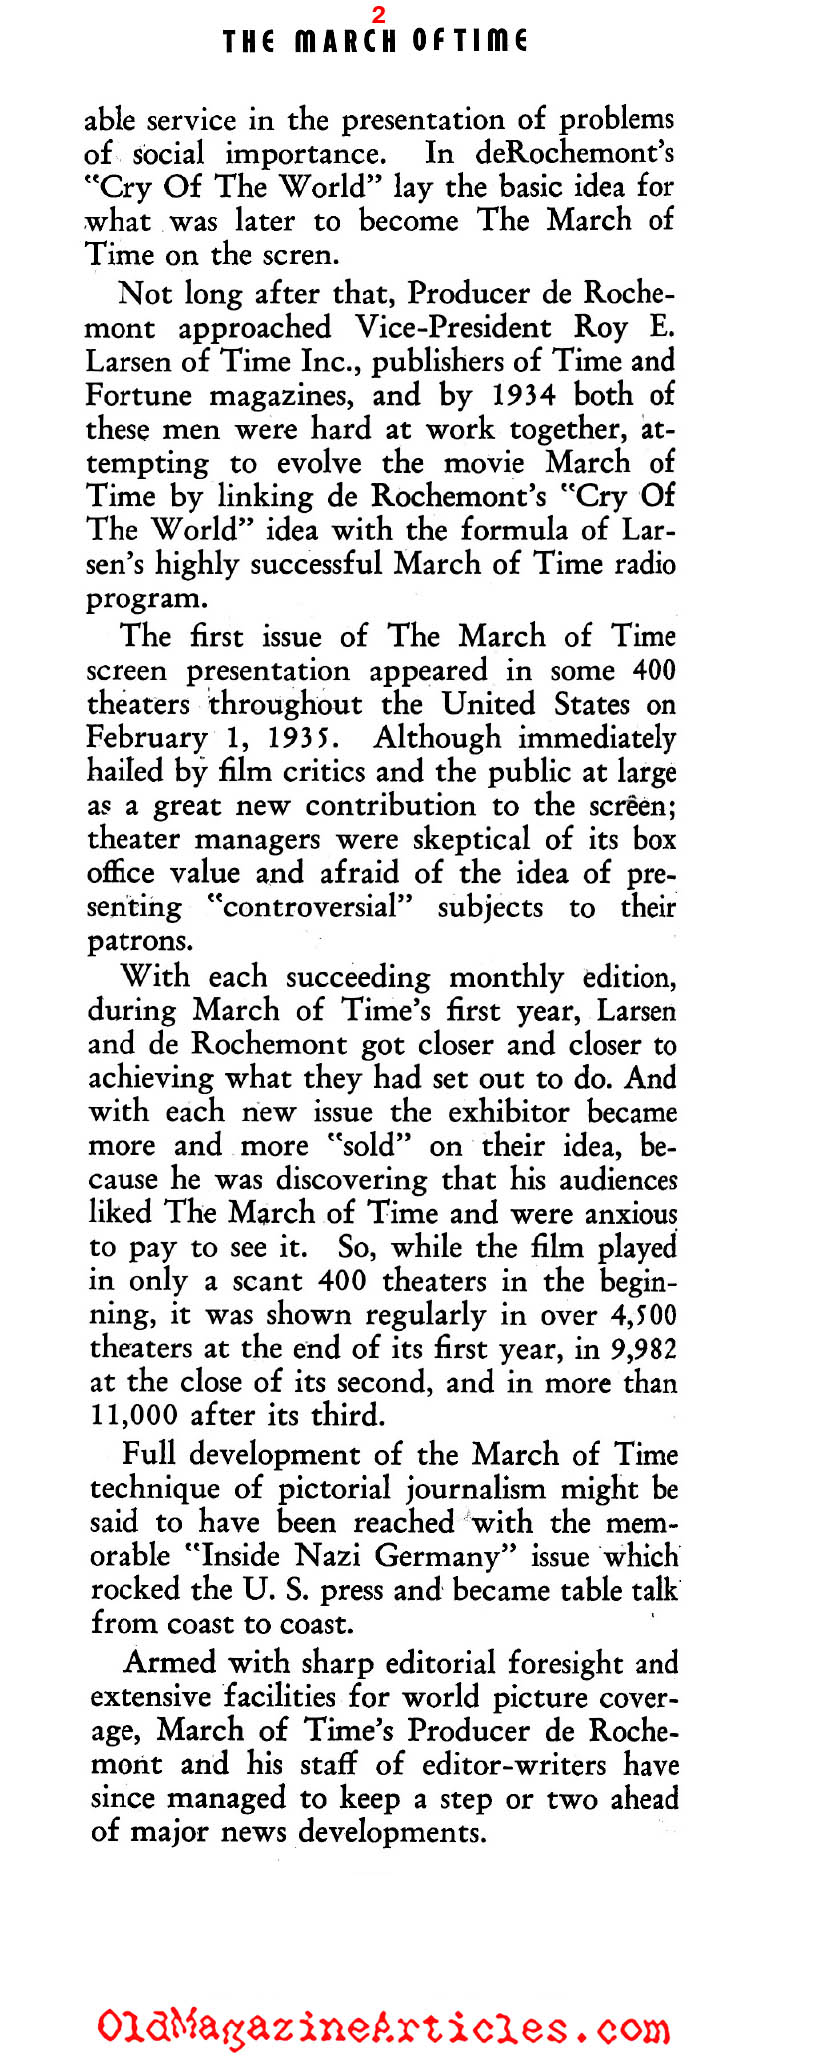 The March of Time: Newsreel Journalism (Film Daily, 1939)